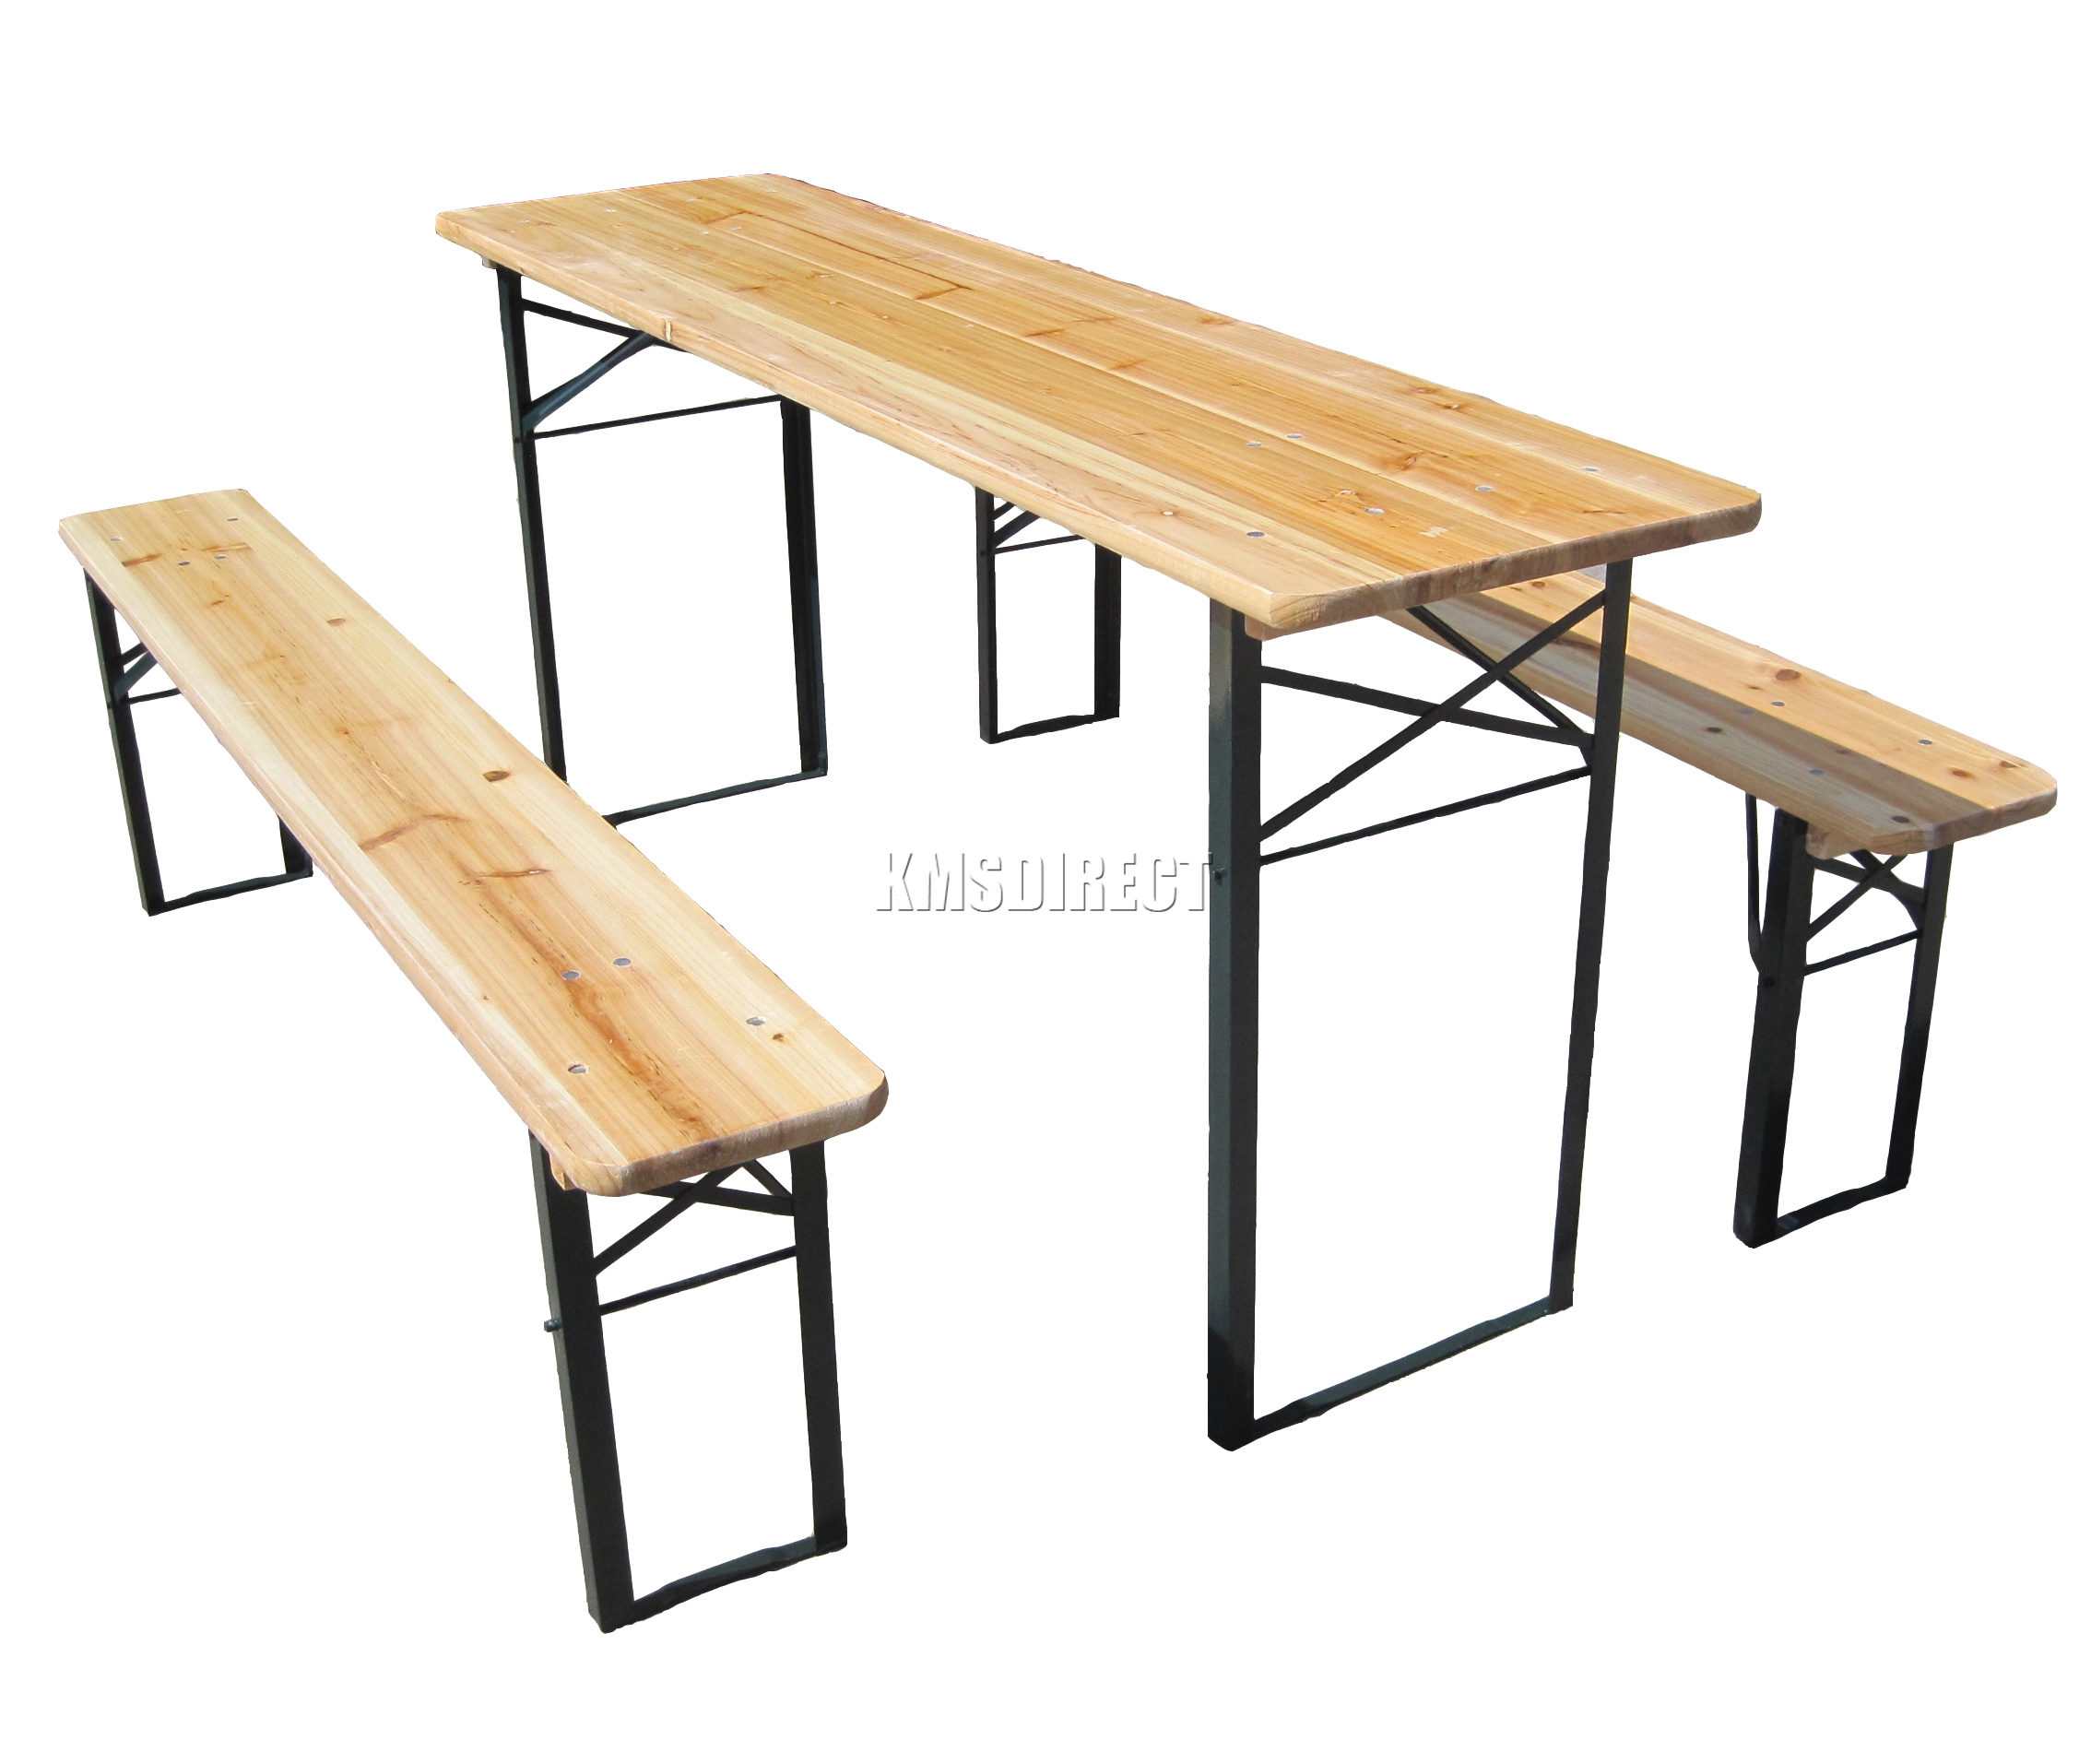 sentinel wooden folding beer table bench set trestle party pub garden furniture steel leg